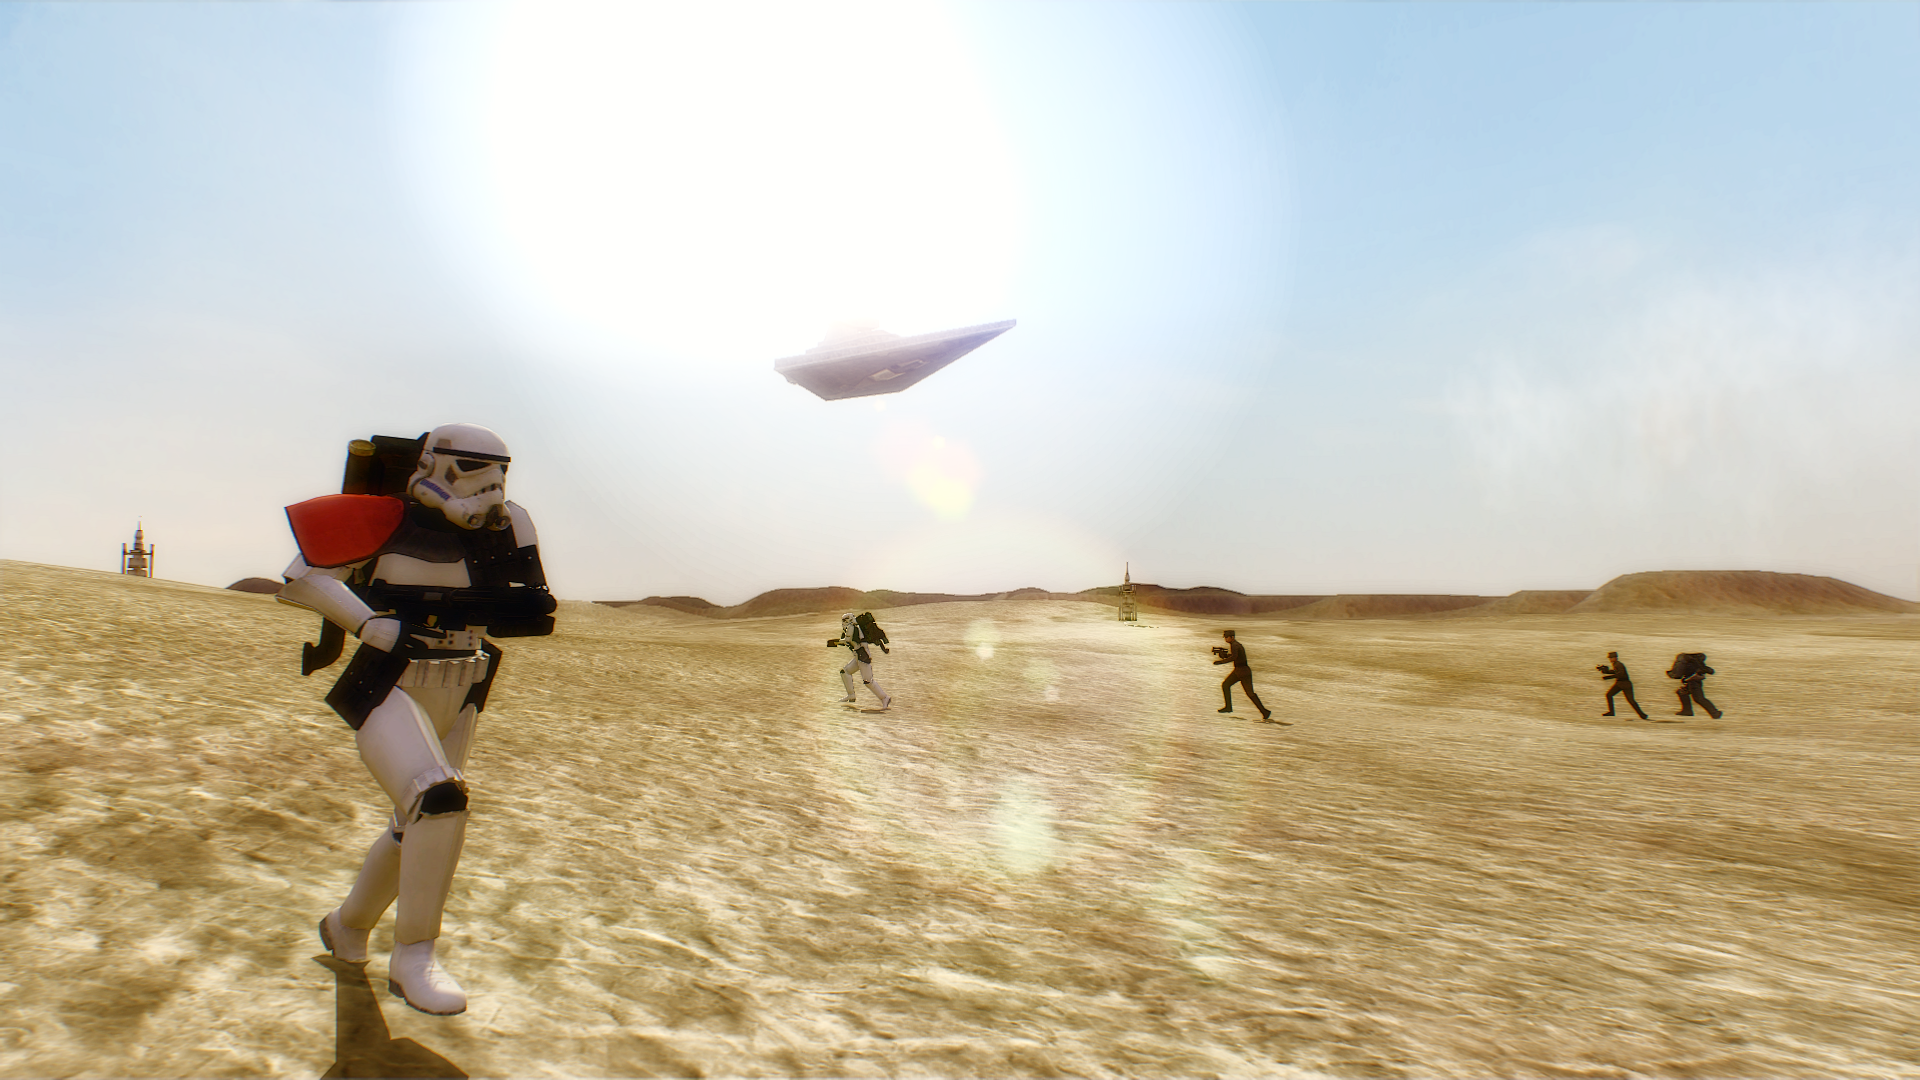 Tatooine Sandtrooper Battlefront 2 HD